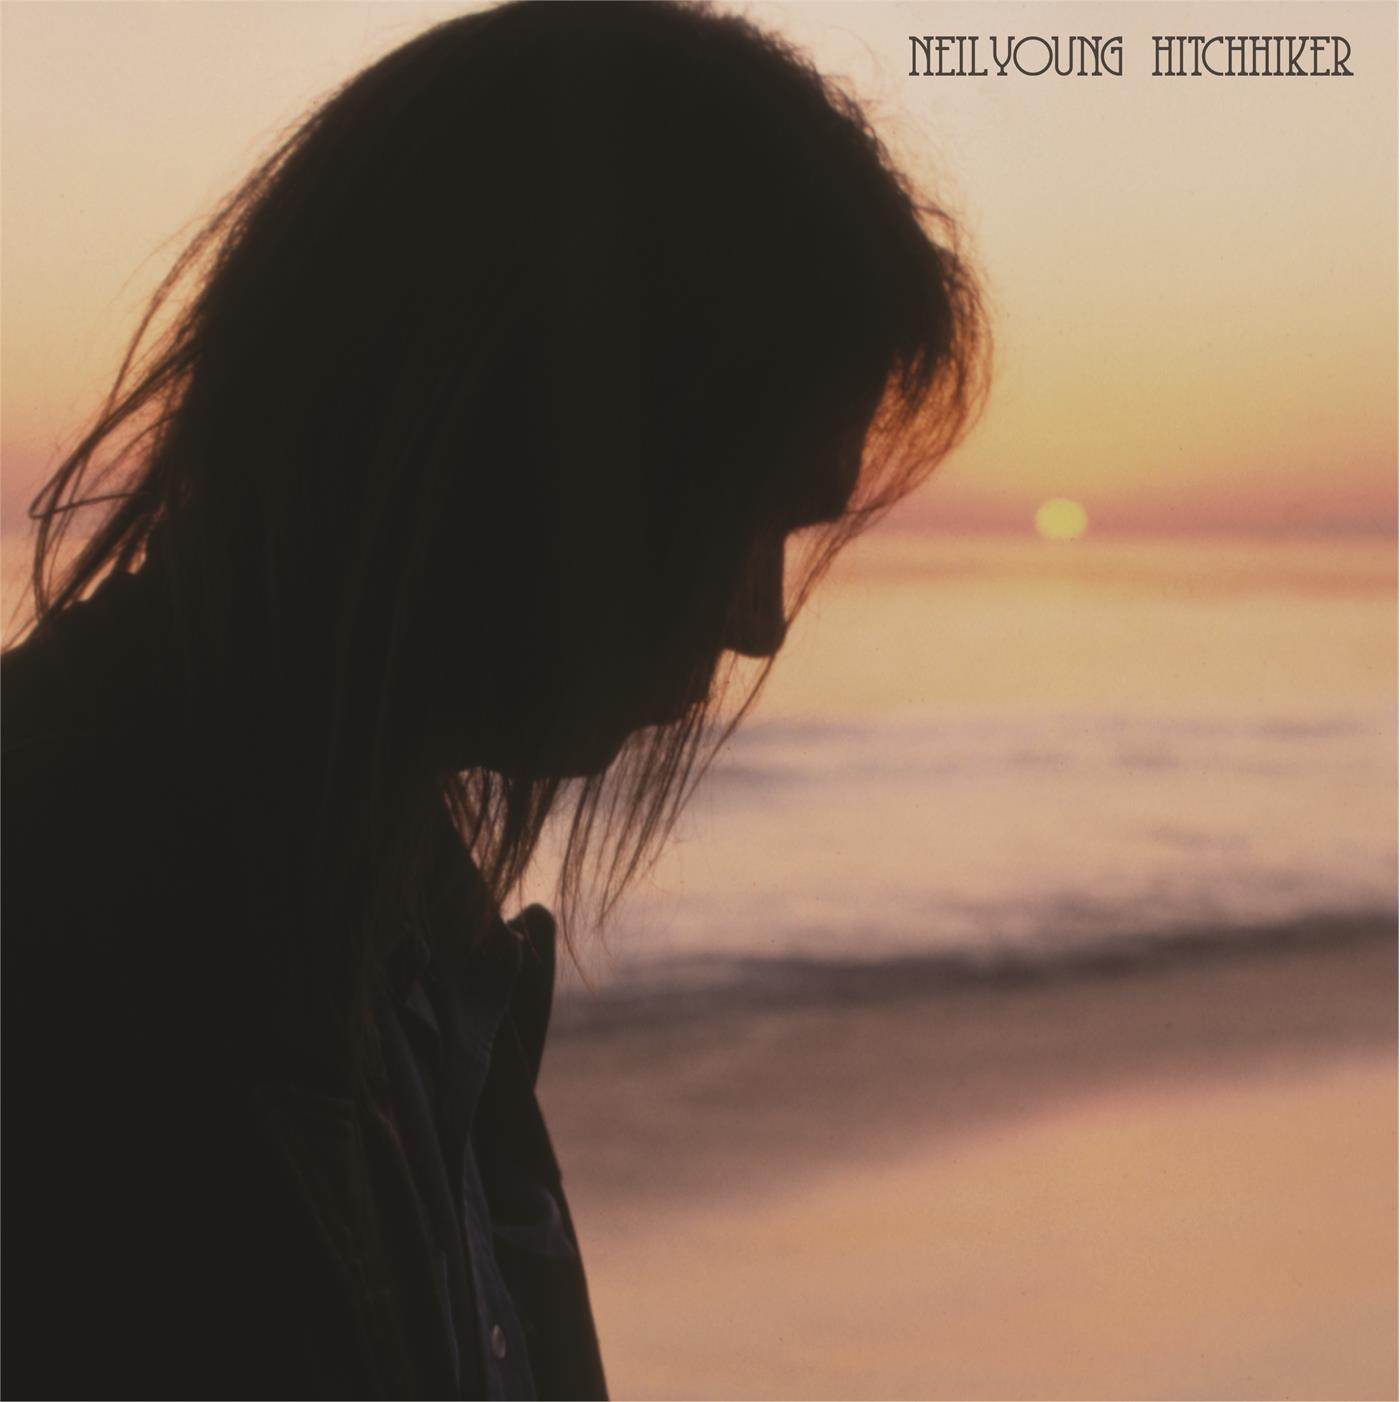 0093624912613 Reprise  Neil Young Hitchhiker (LP)